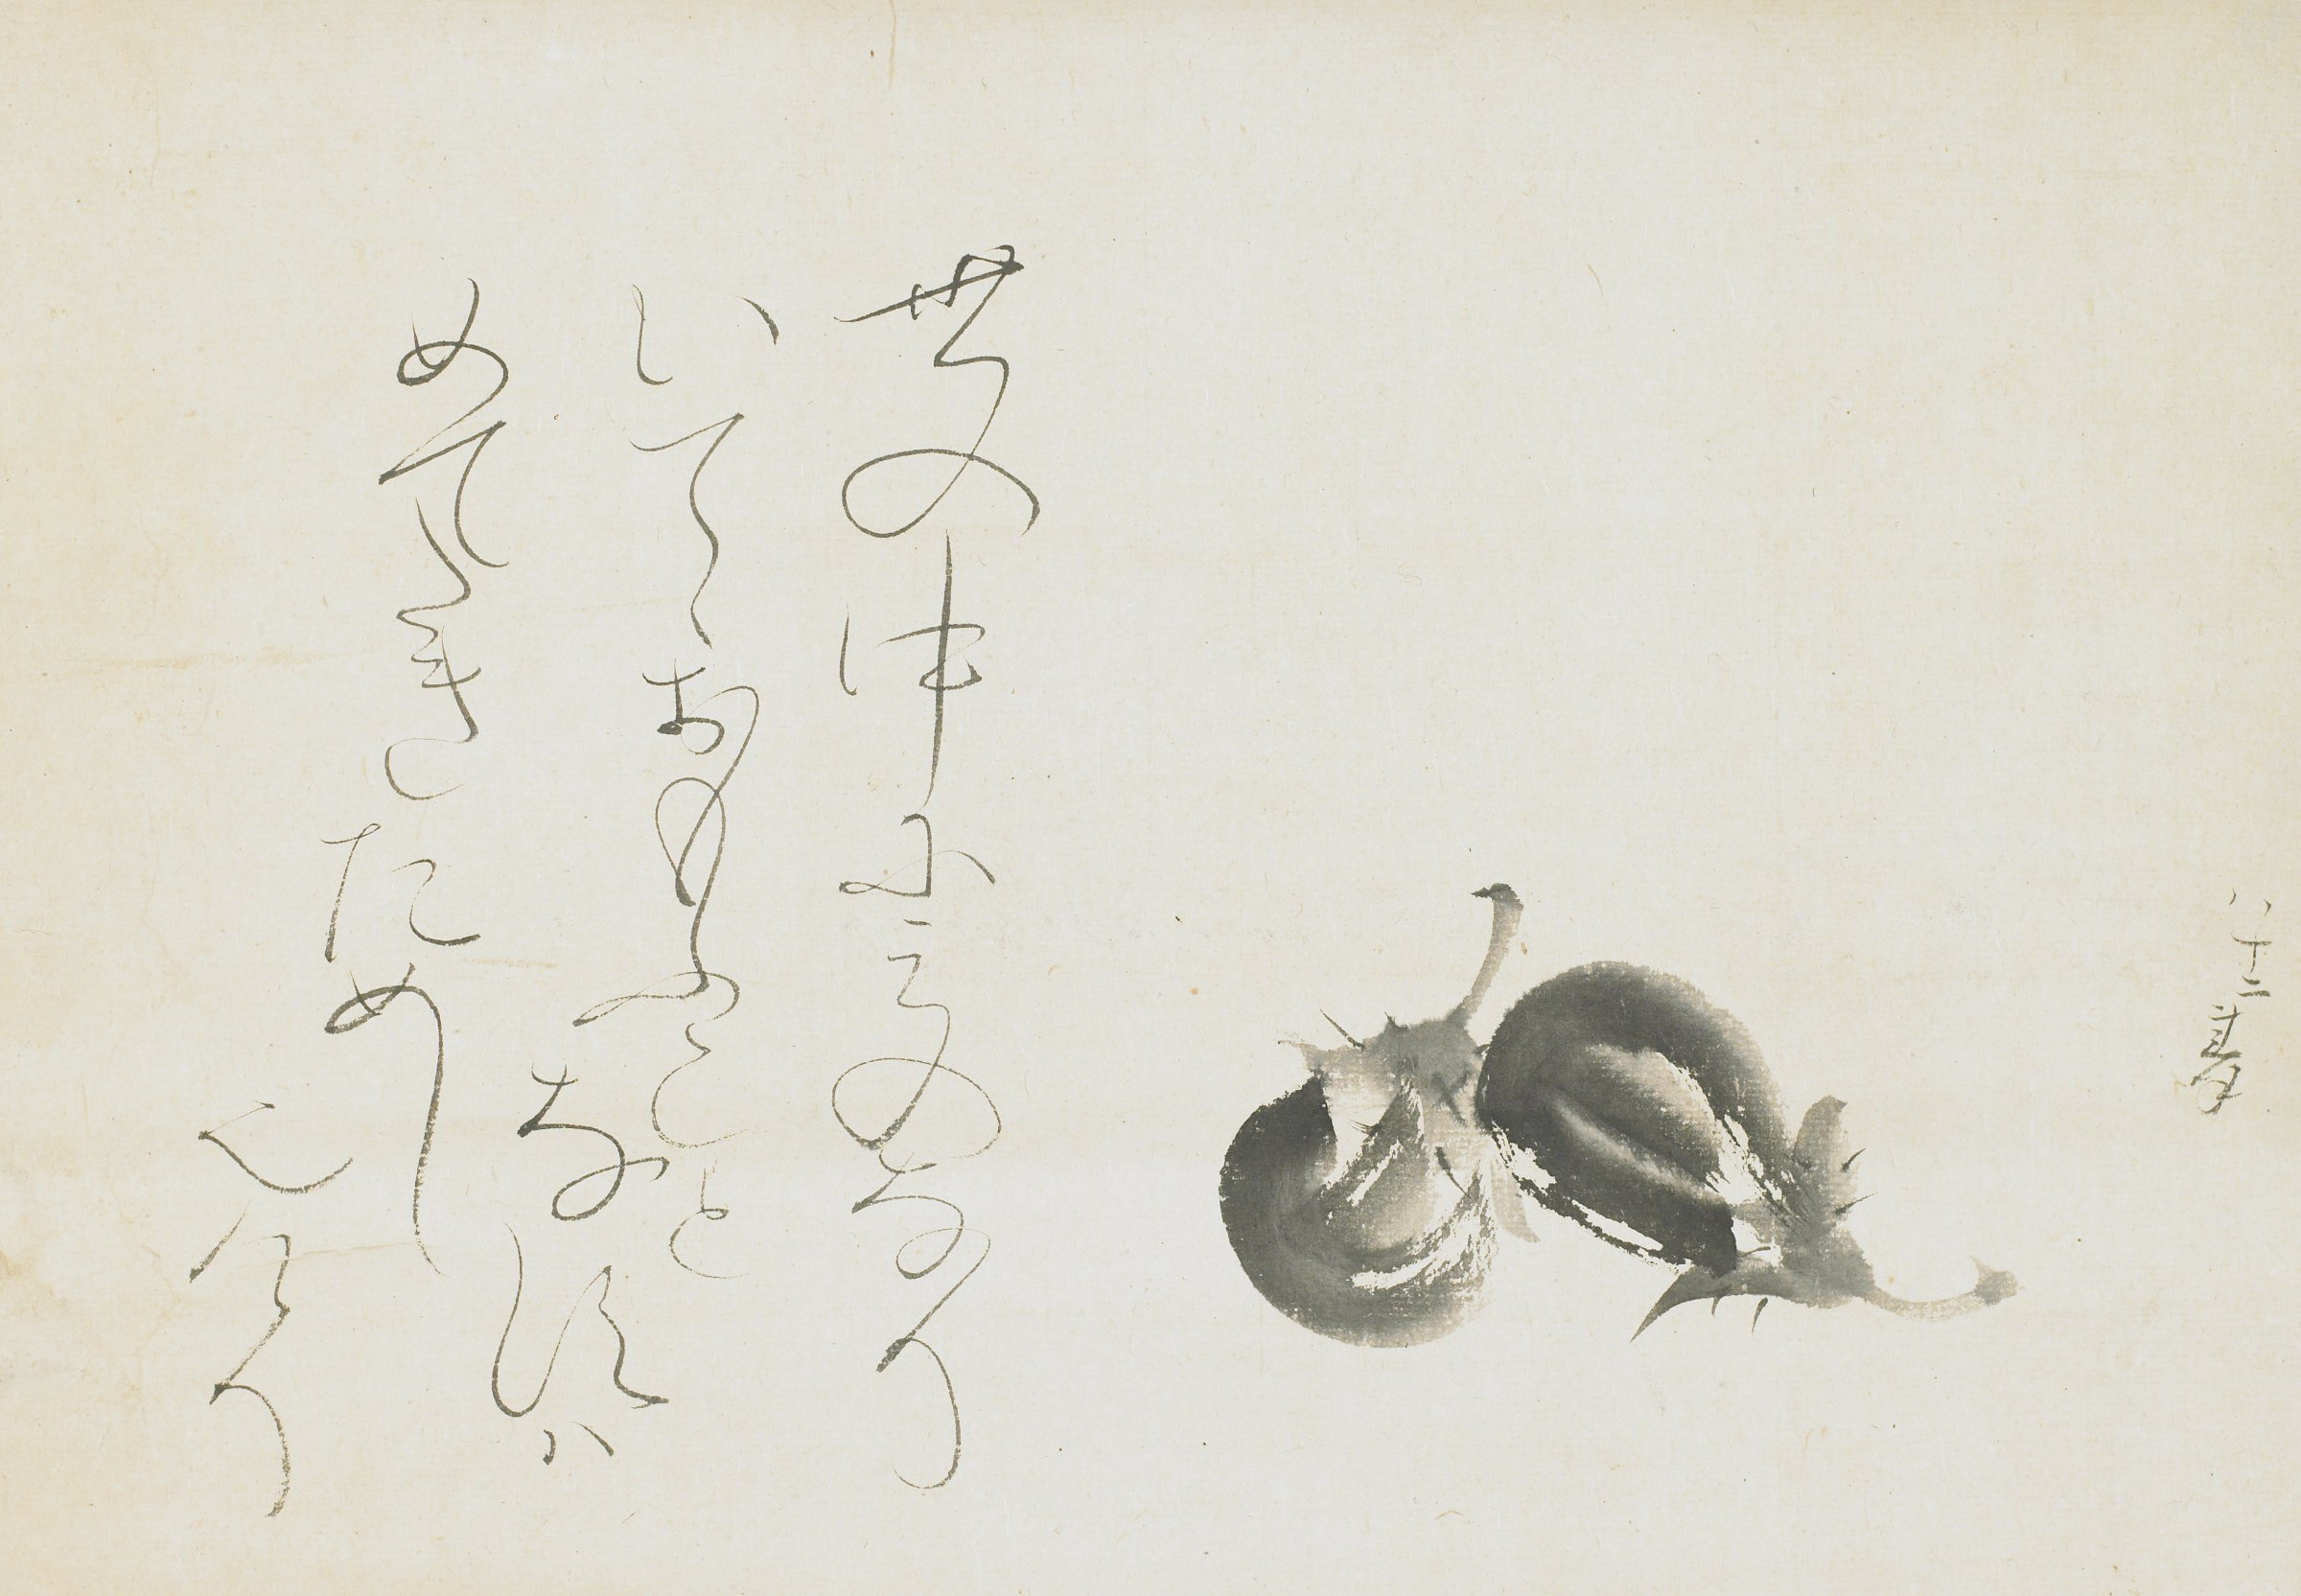 Hanging scroll with painting of eggplants and calligraphy